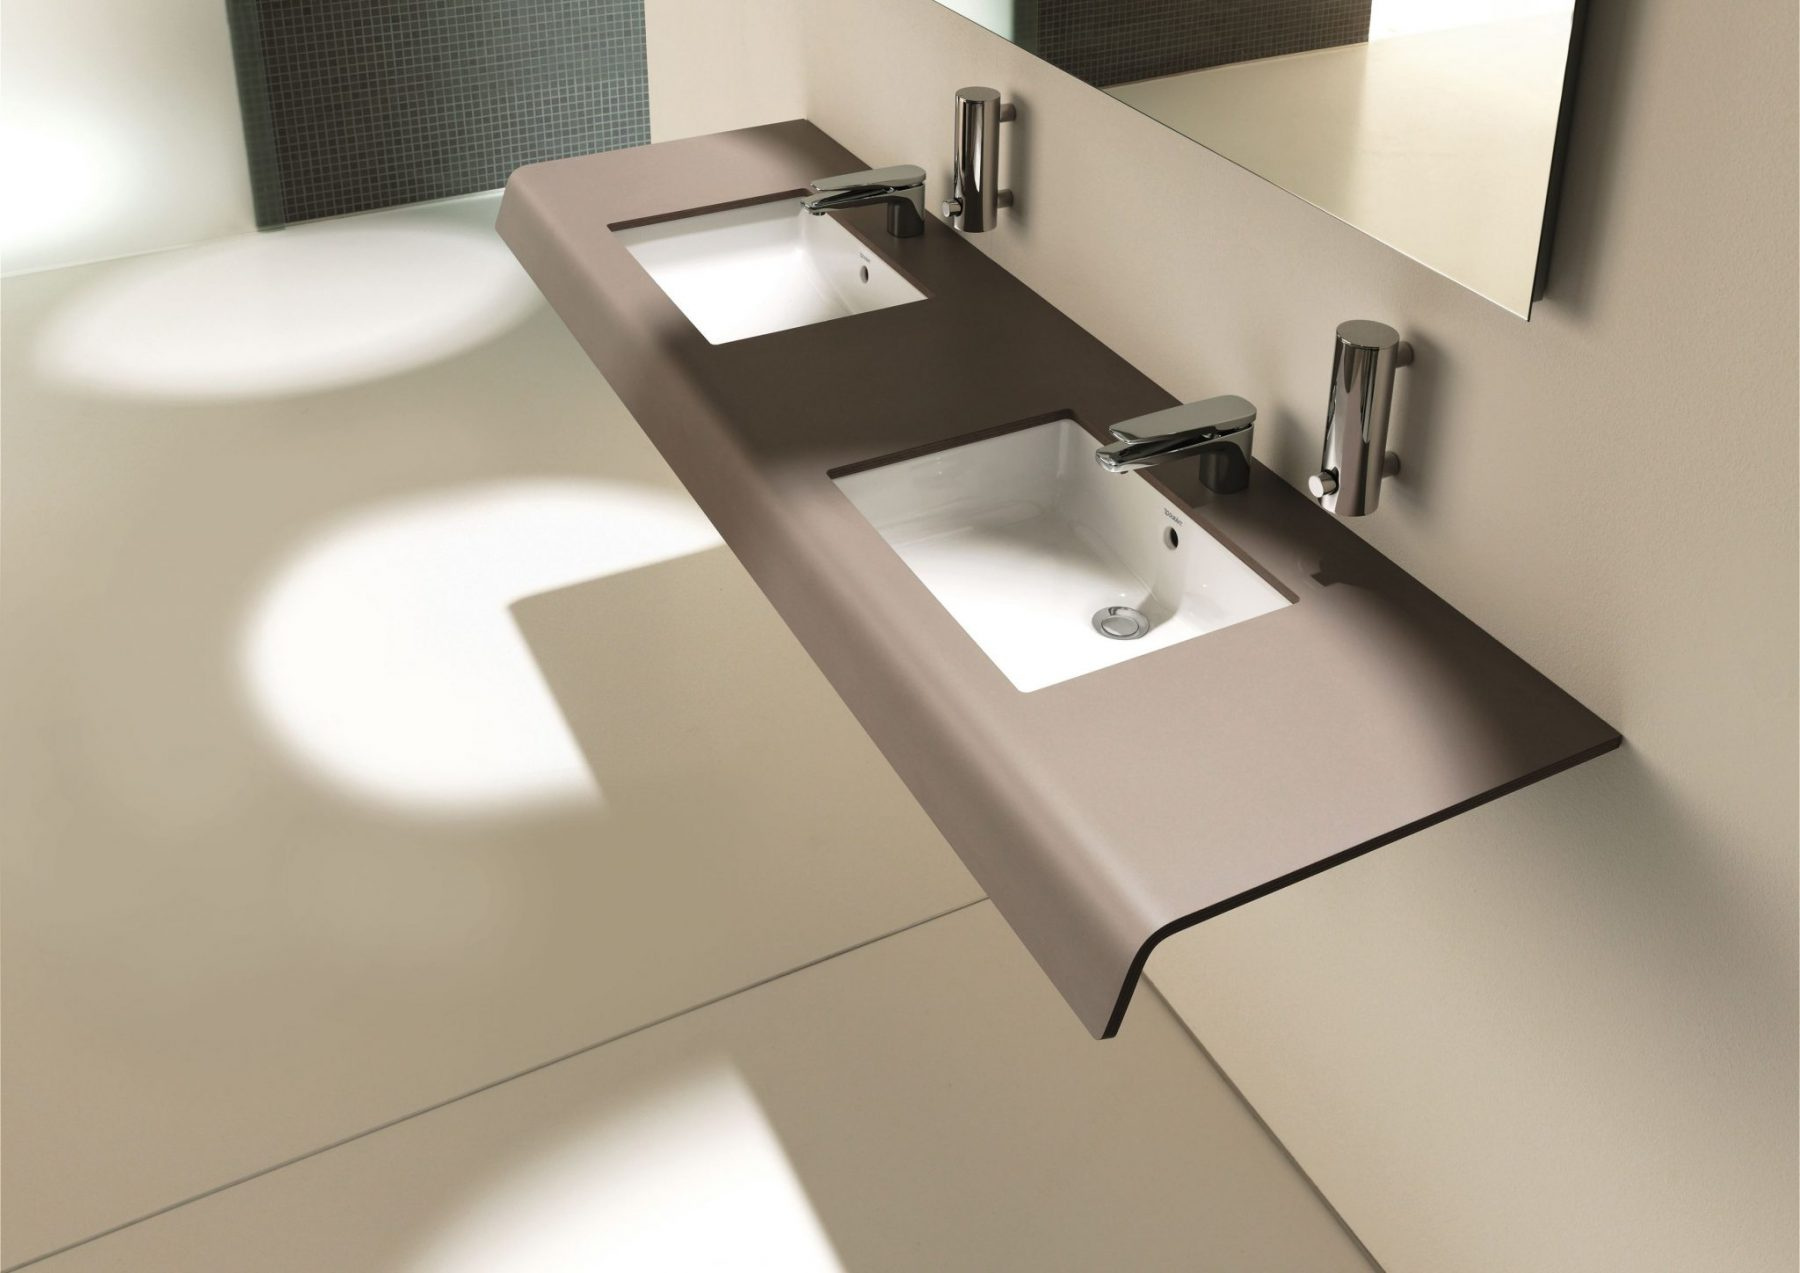 Catalogue Salle De Bain Richardson ~ Plan Vasque Accessible Salle De Bain Durastyle Duravit